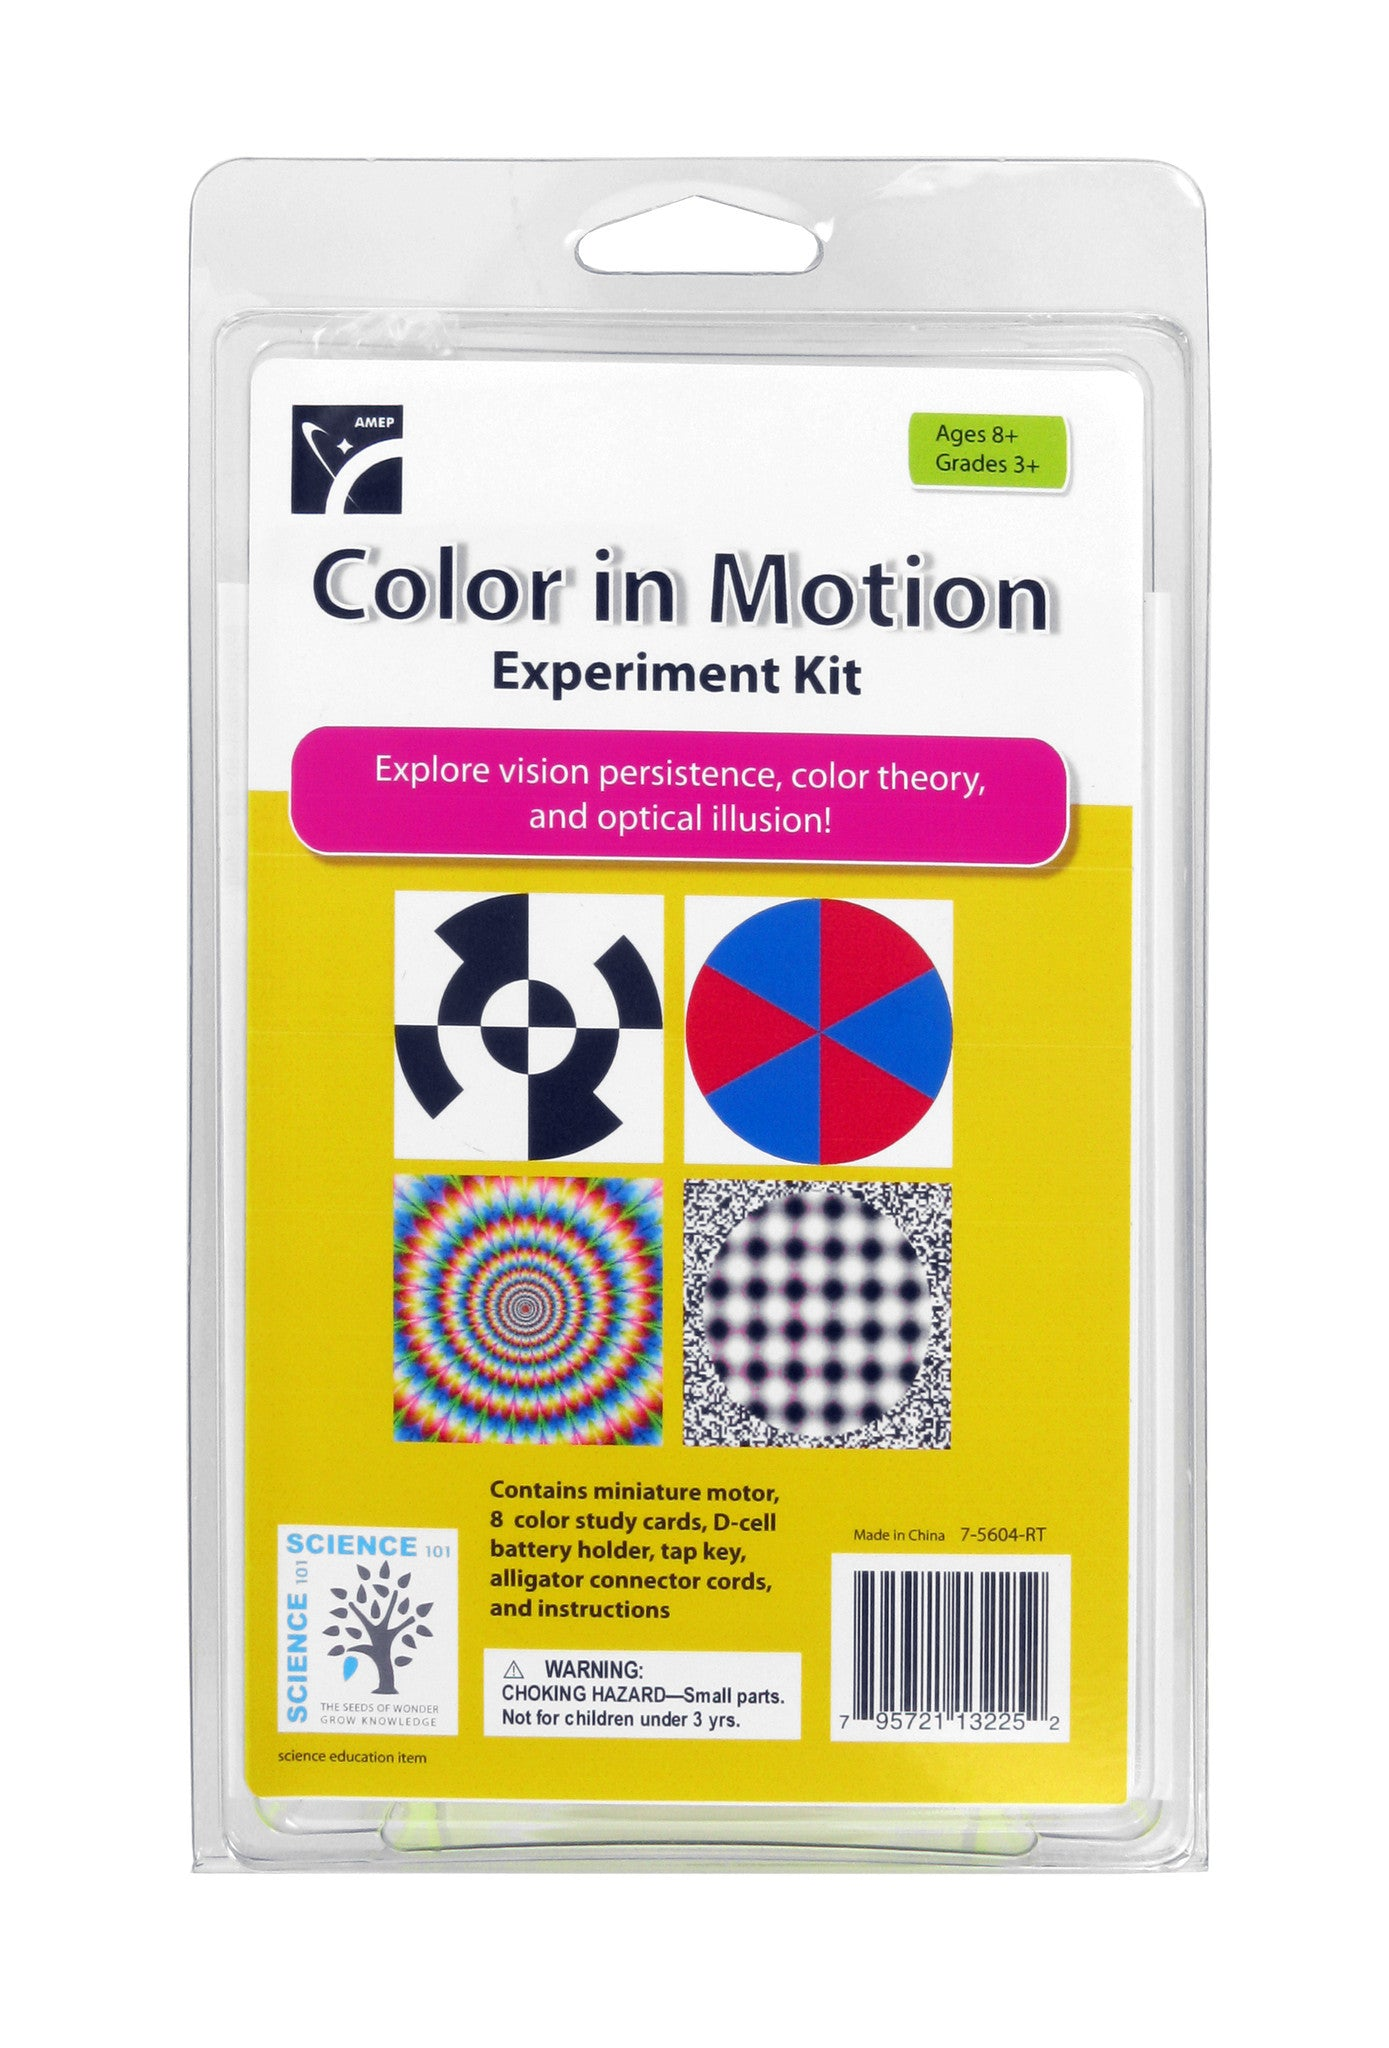 Color in Motion Experiment Kit